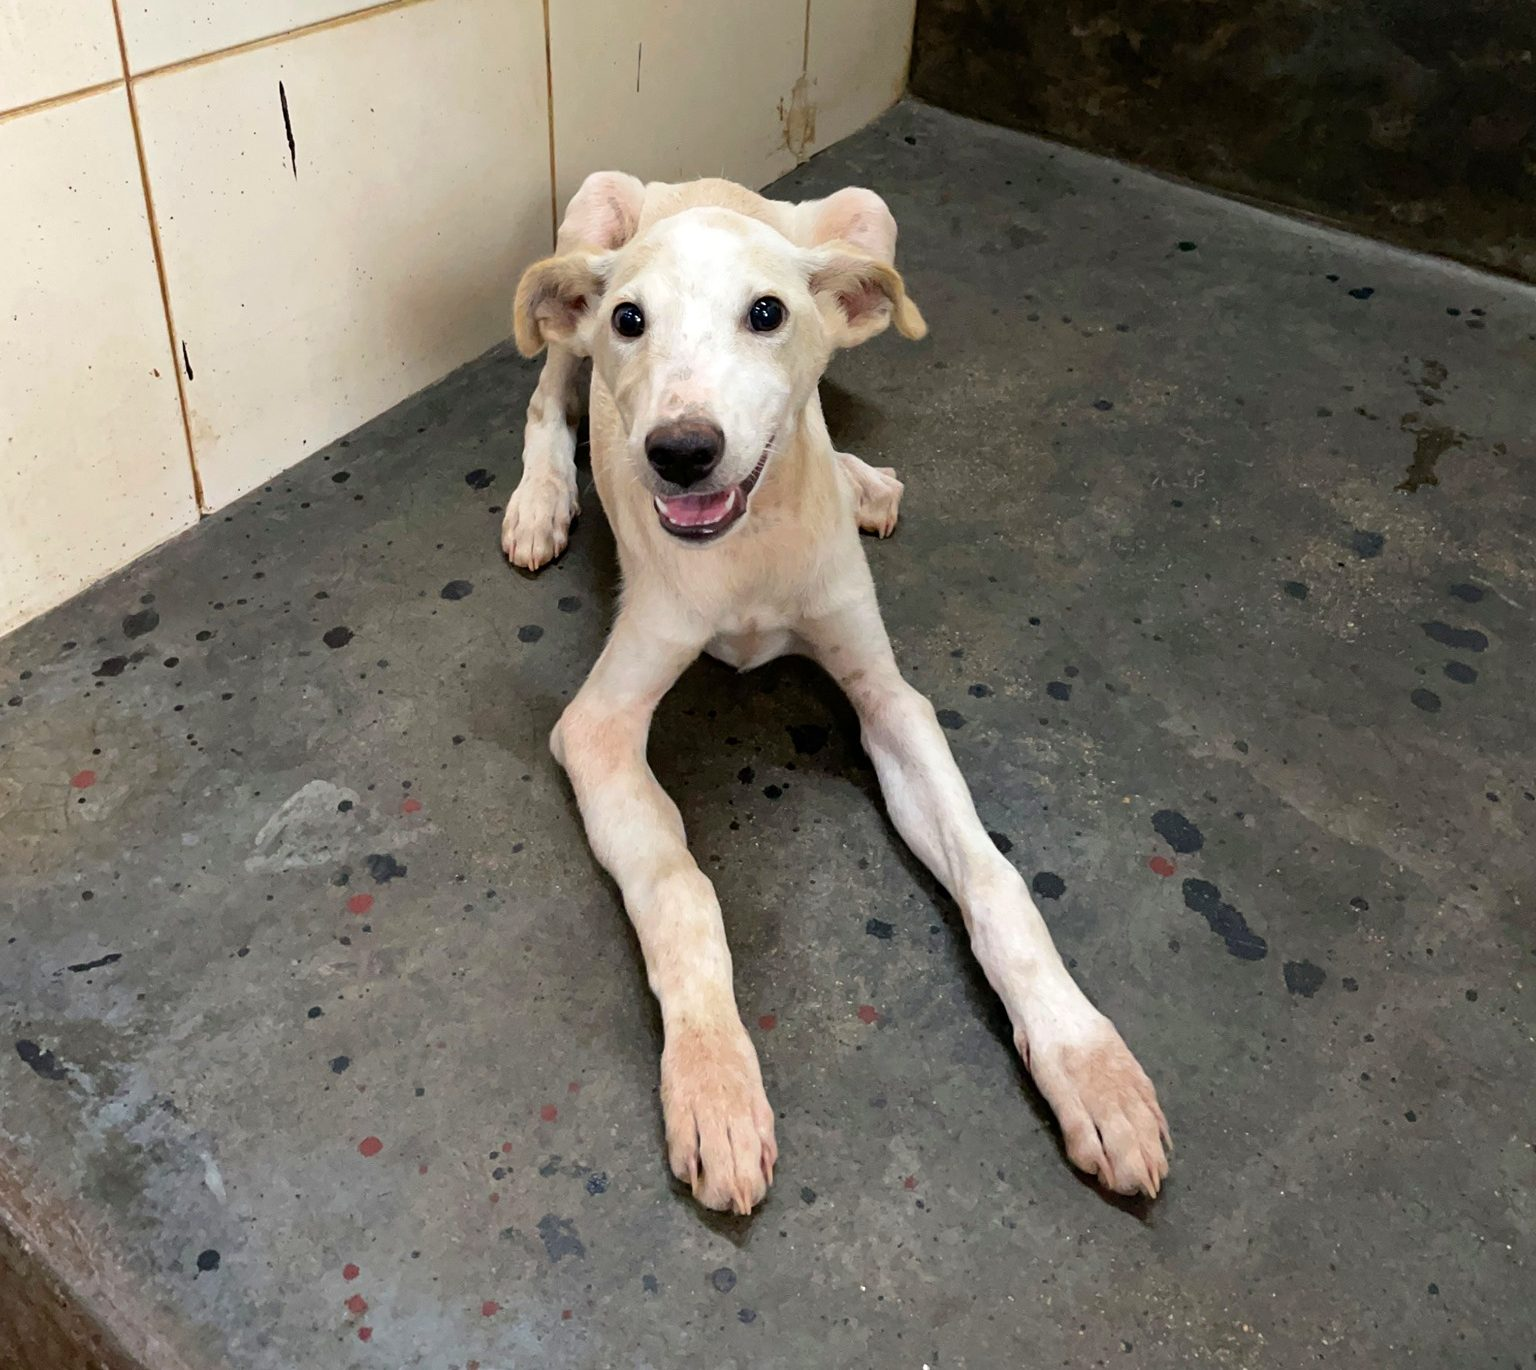 India: Puppy attacked with metal rod